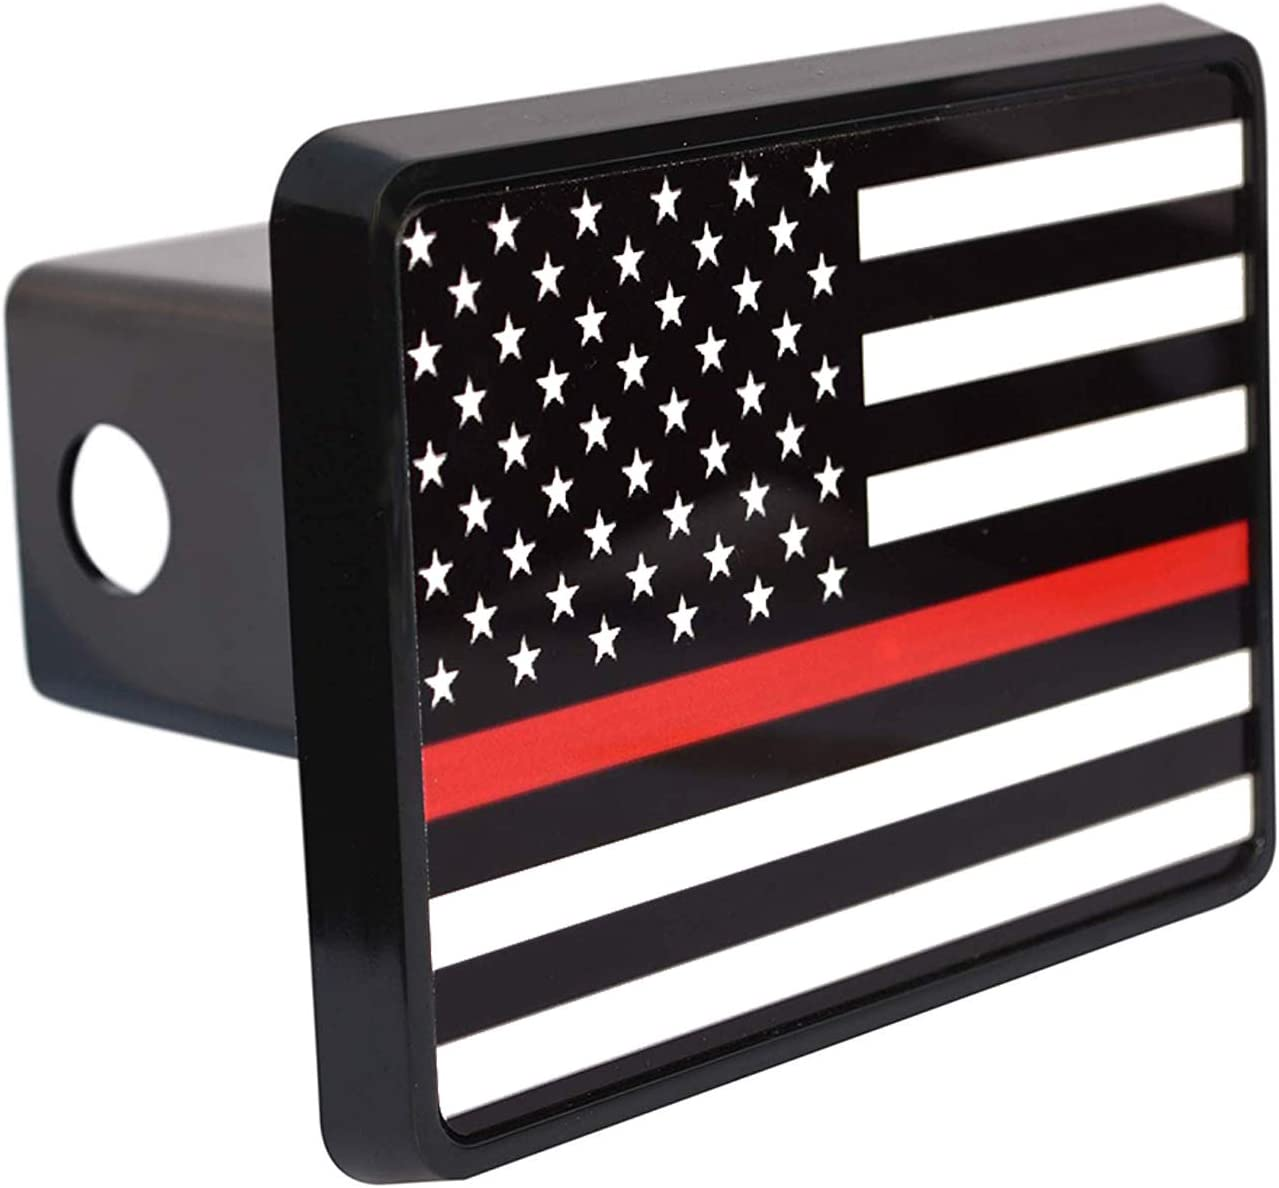 Rogue River Tactical Thin Red Line Flag Trailer Hitch Cover Plug US Firefighter Fire Fighter Truck Department FD